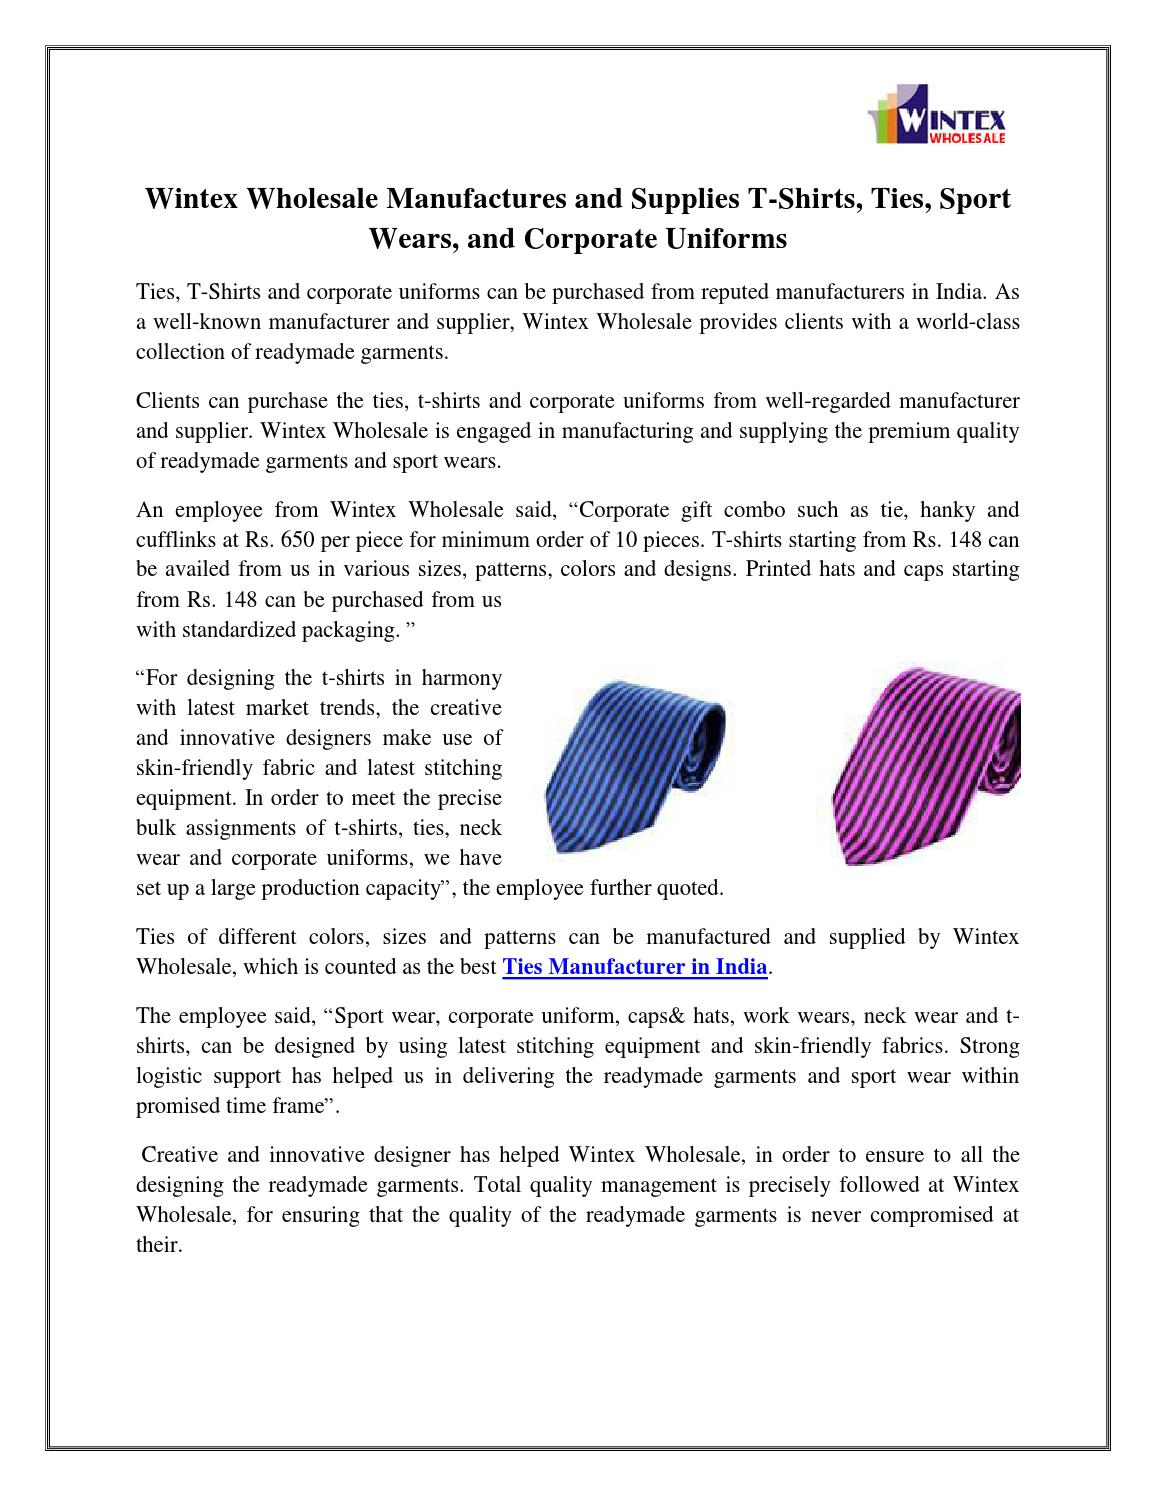 Wintex wholesale manufactures and supplies t shirts, ties, sport